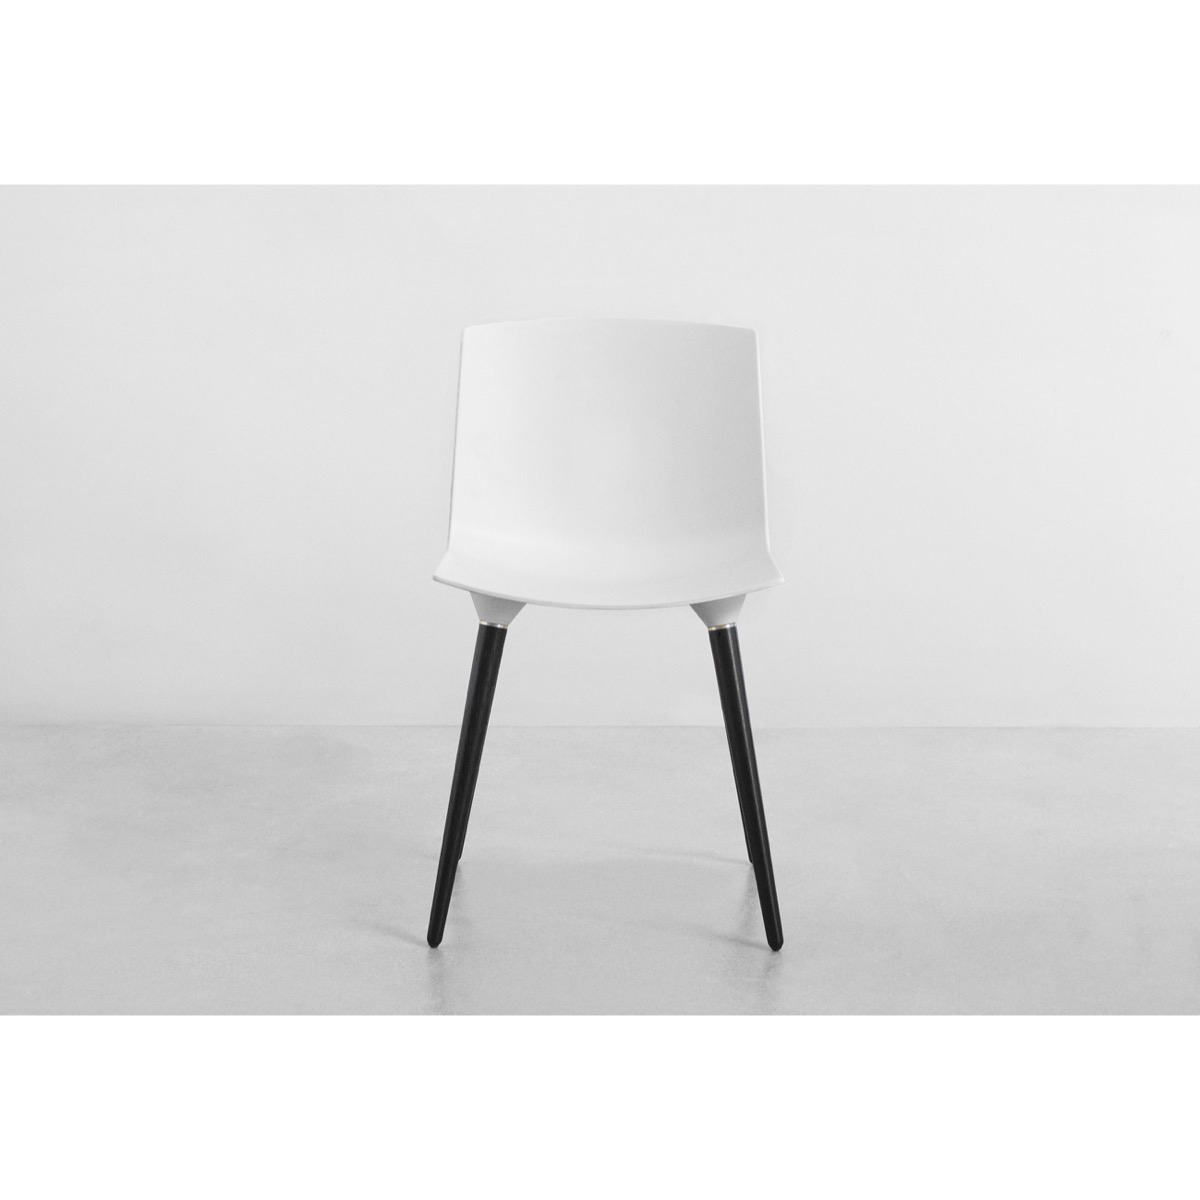 Andersen Furniture TAC - The Andersen Chair